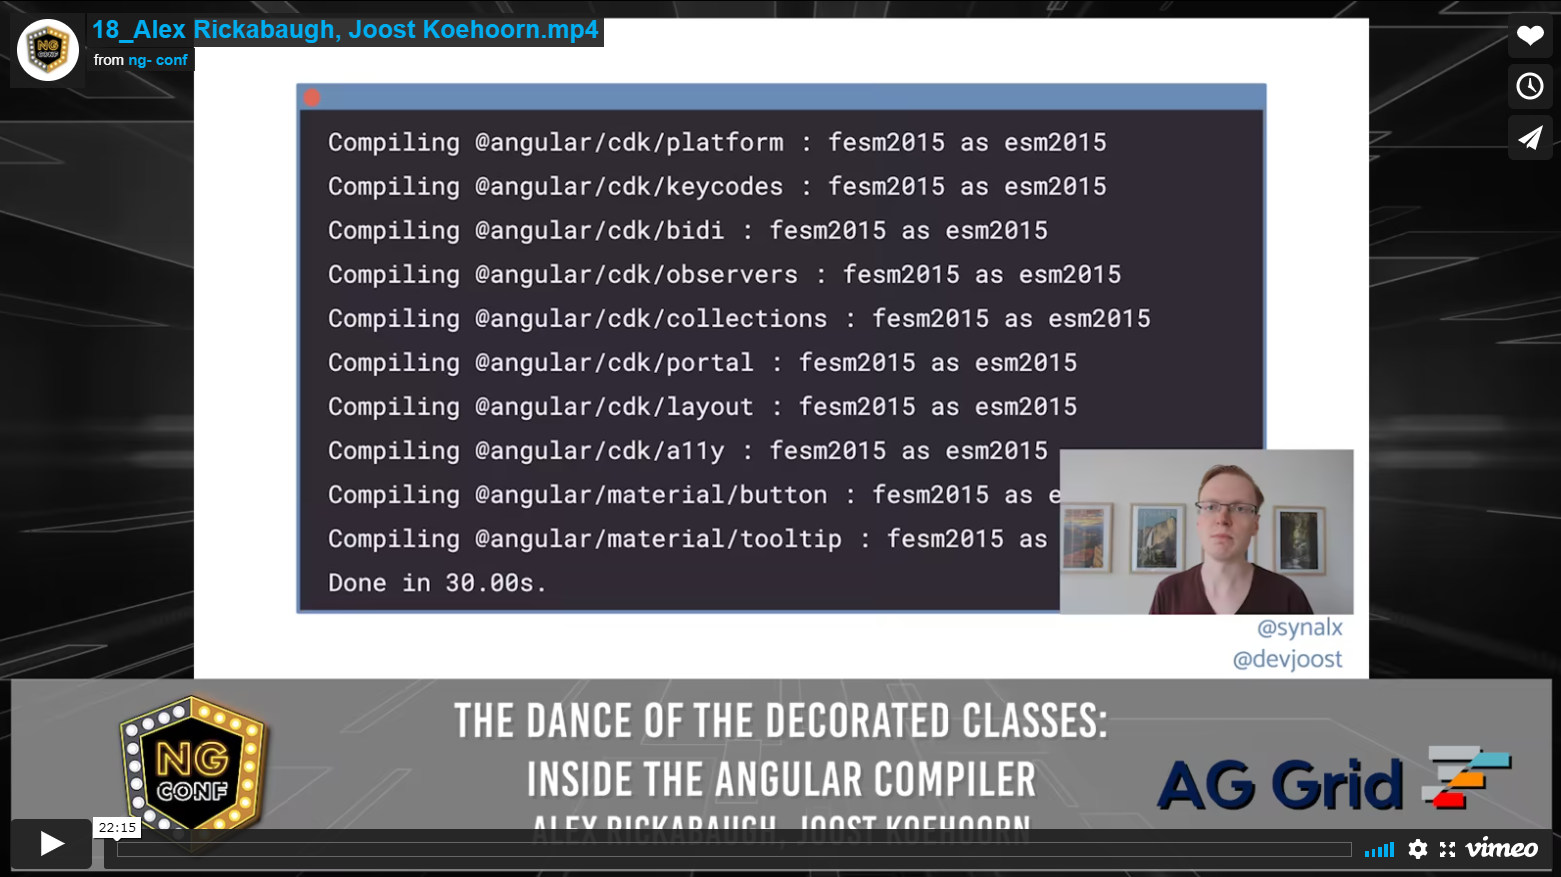 The Dance of the Decorated Classes: Inside the Angular Compiler